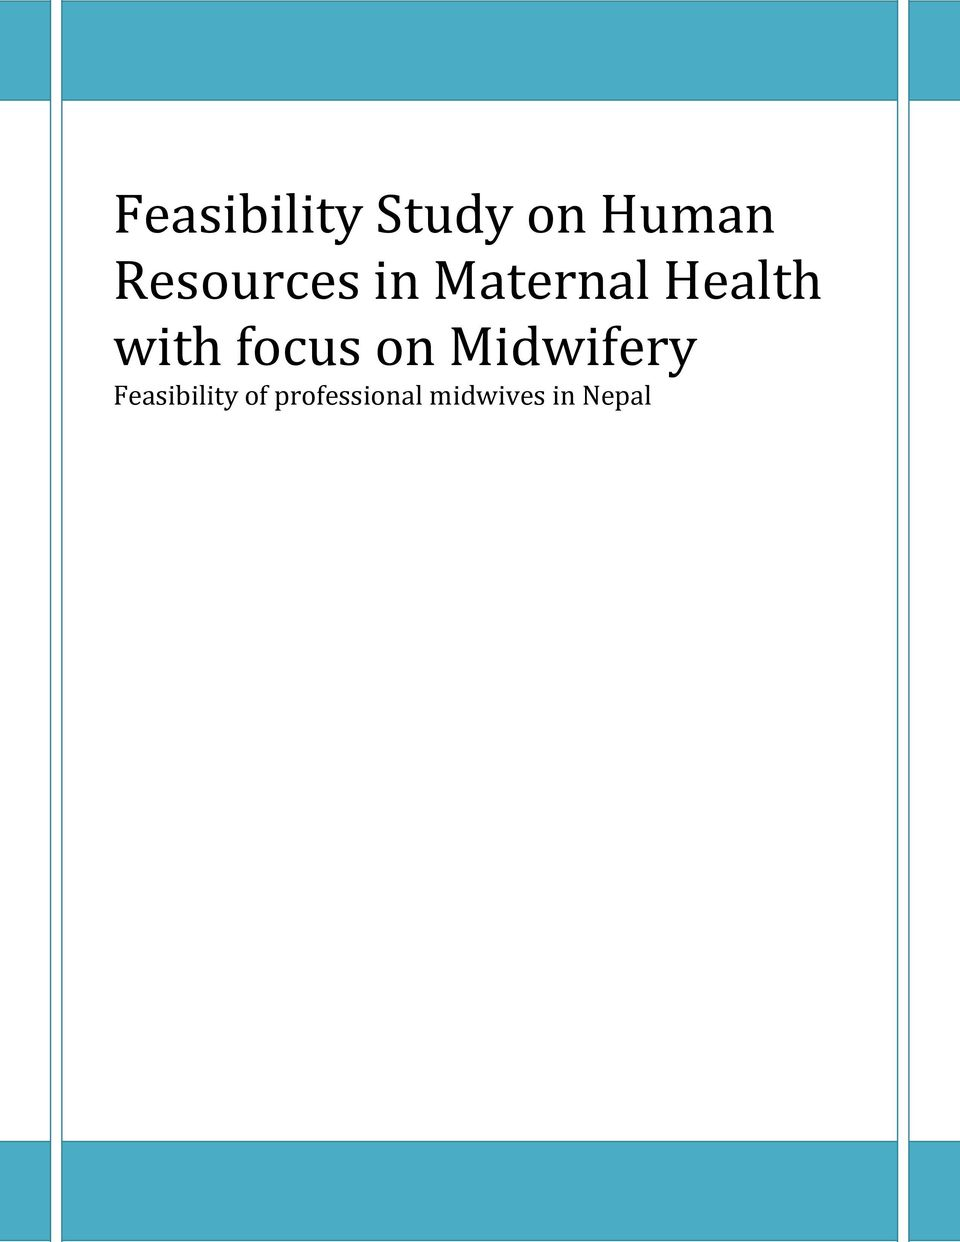 with focus on Midwifery